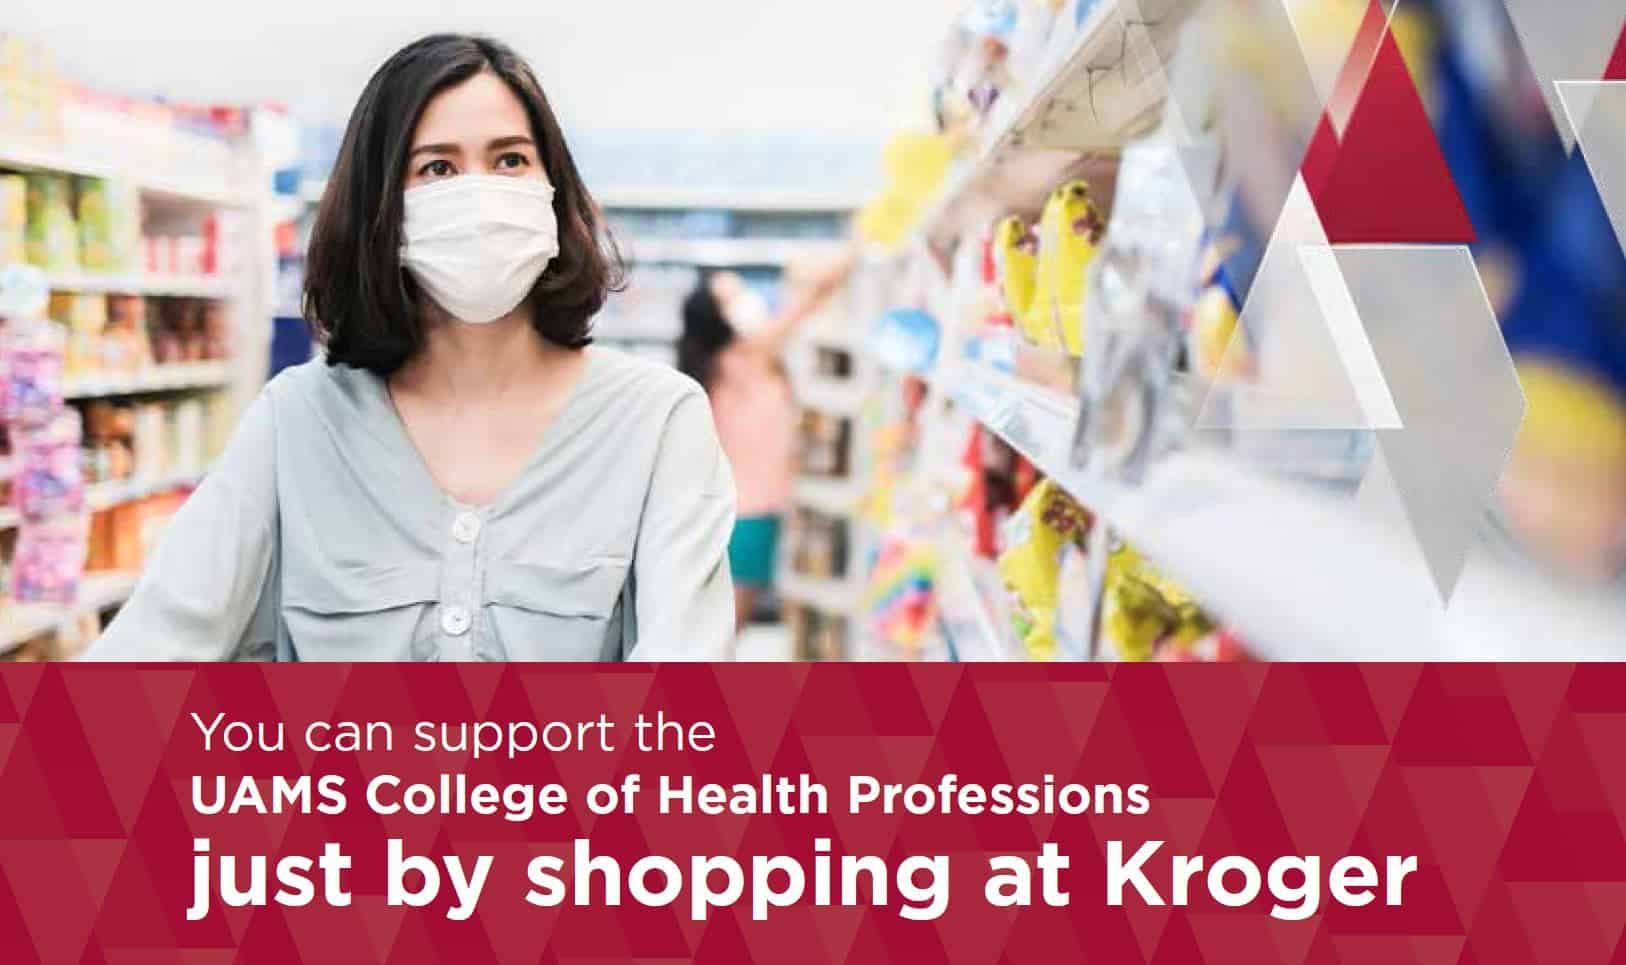 Kroger Featured Image